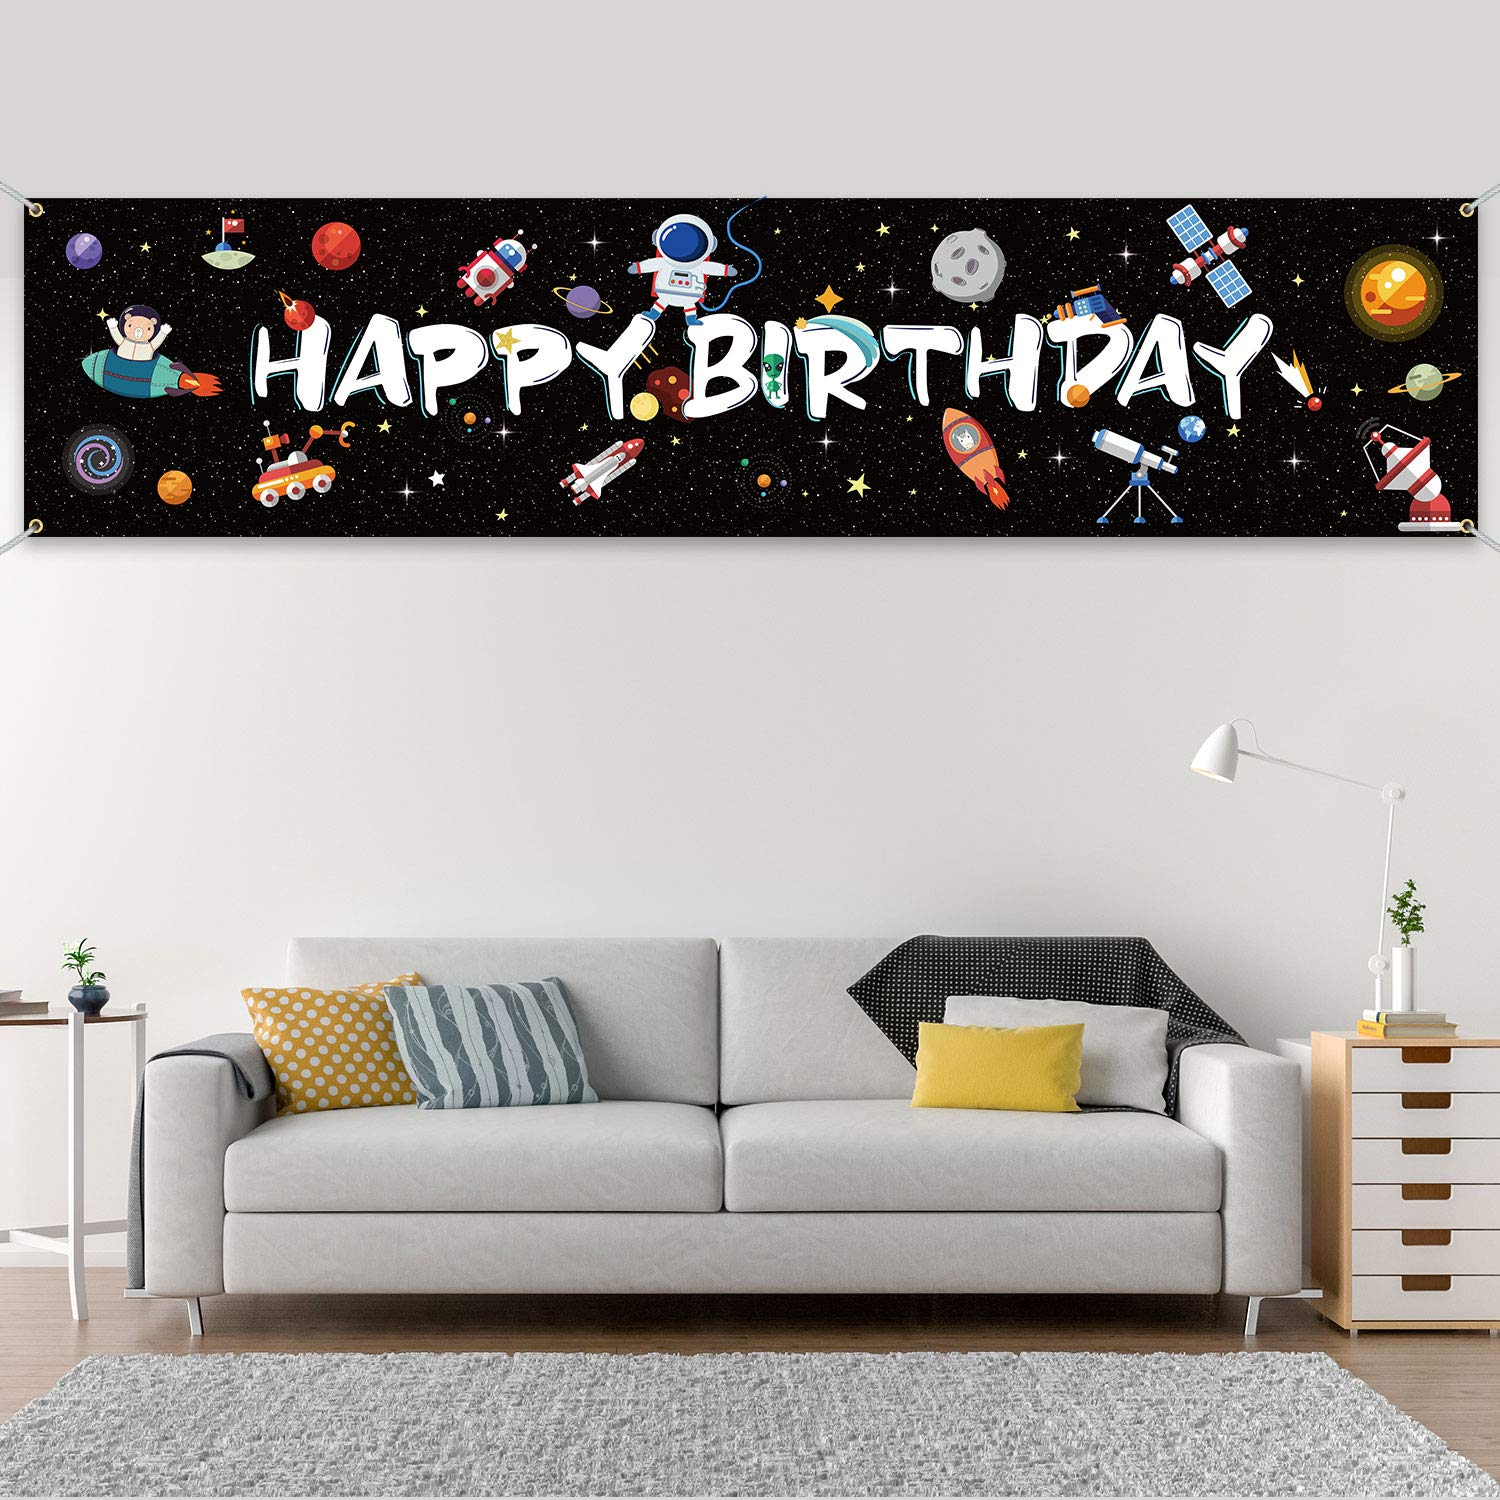 Outer Space Birthday Party Supplies, Space Theme Banner Fabric Solar System Party Backdrop Background Photo Booth Table Runner Room Wall Art Decor for Kid Birthday Party Decorations, 71 x 16 Inch